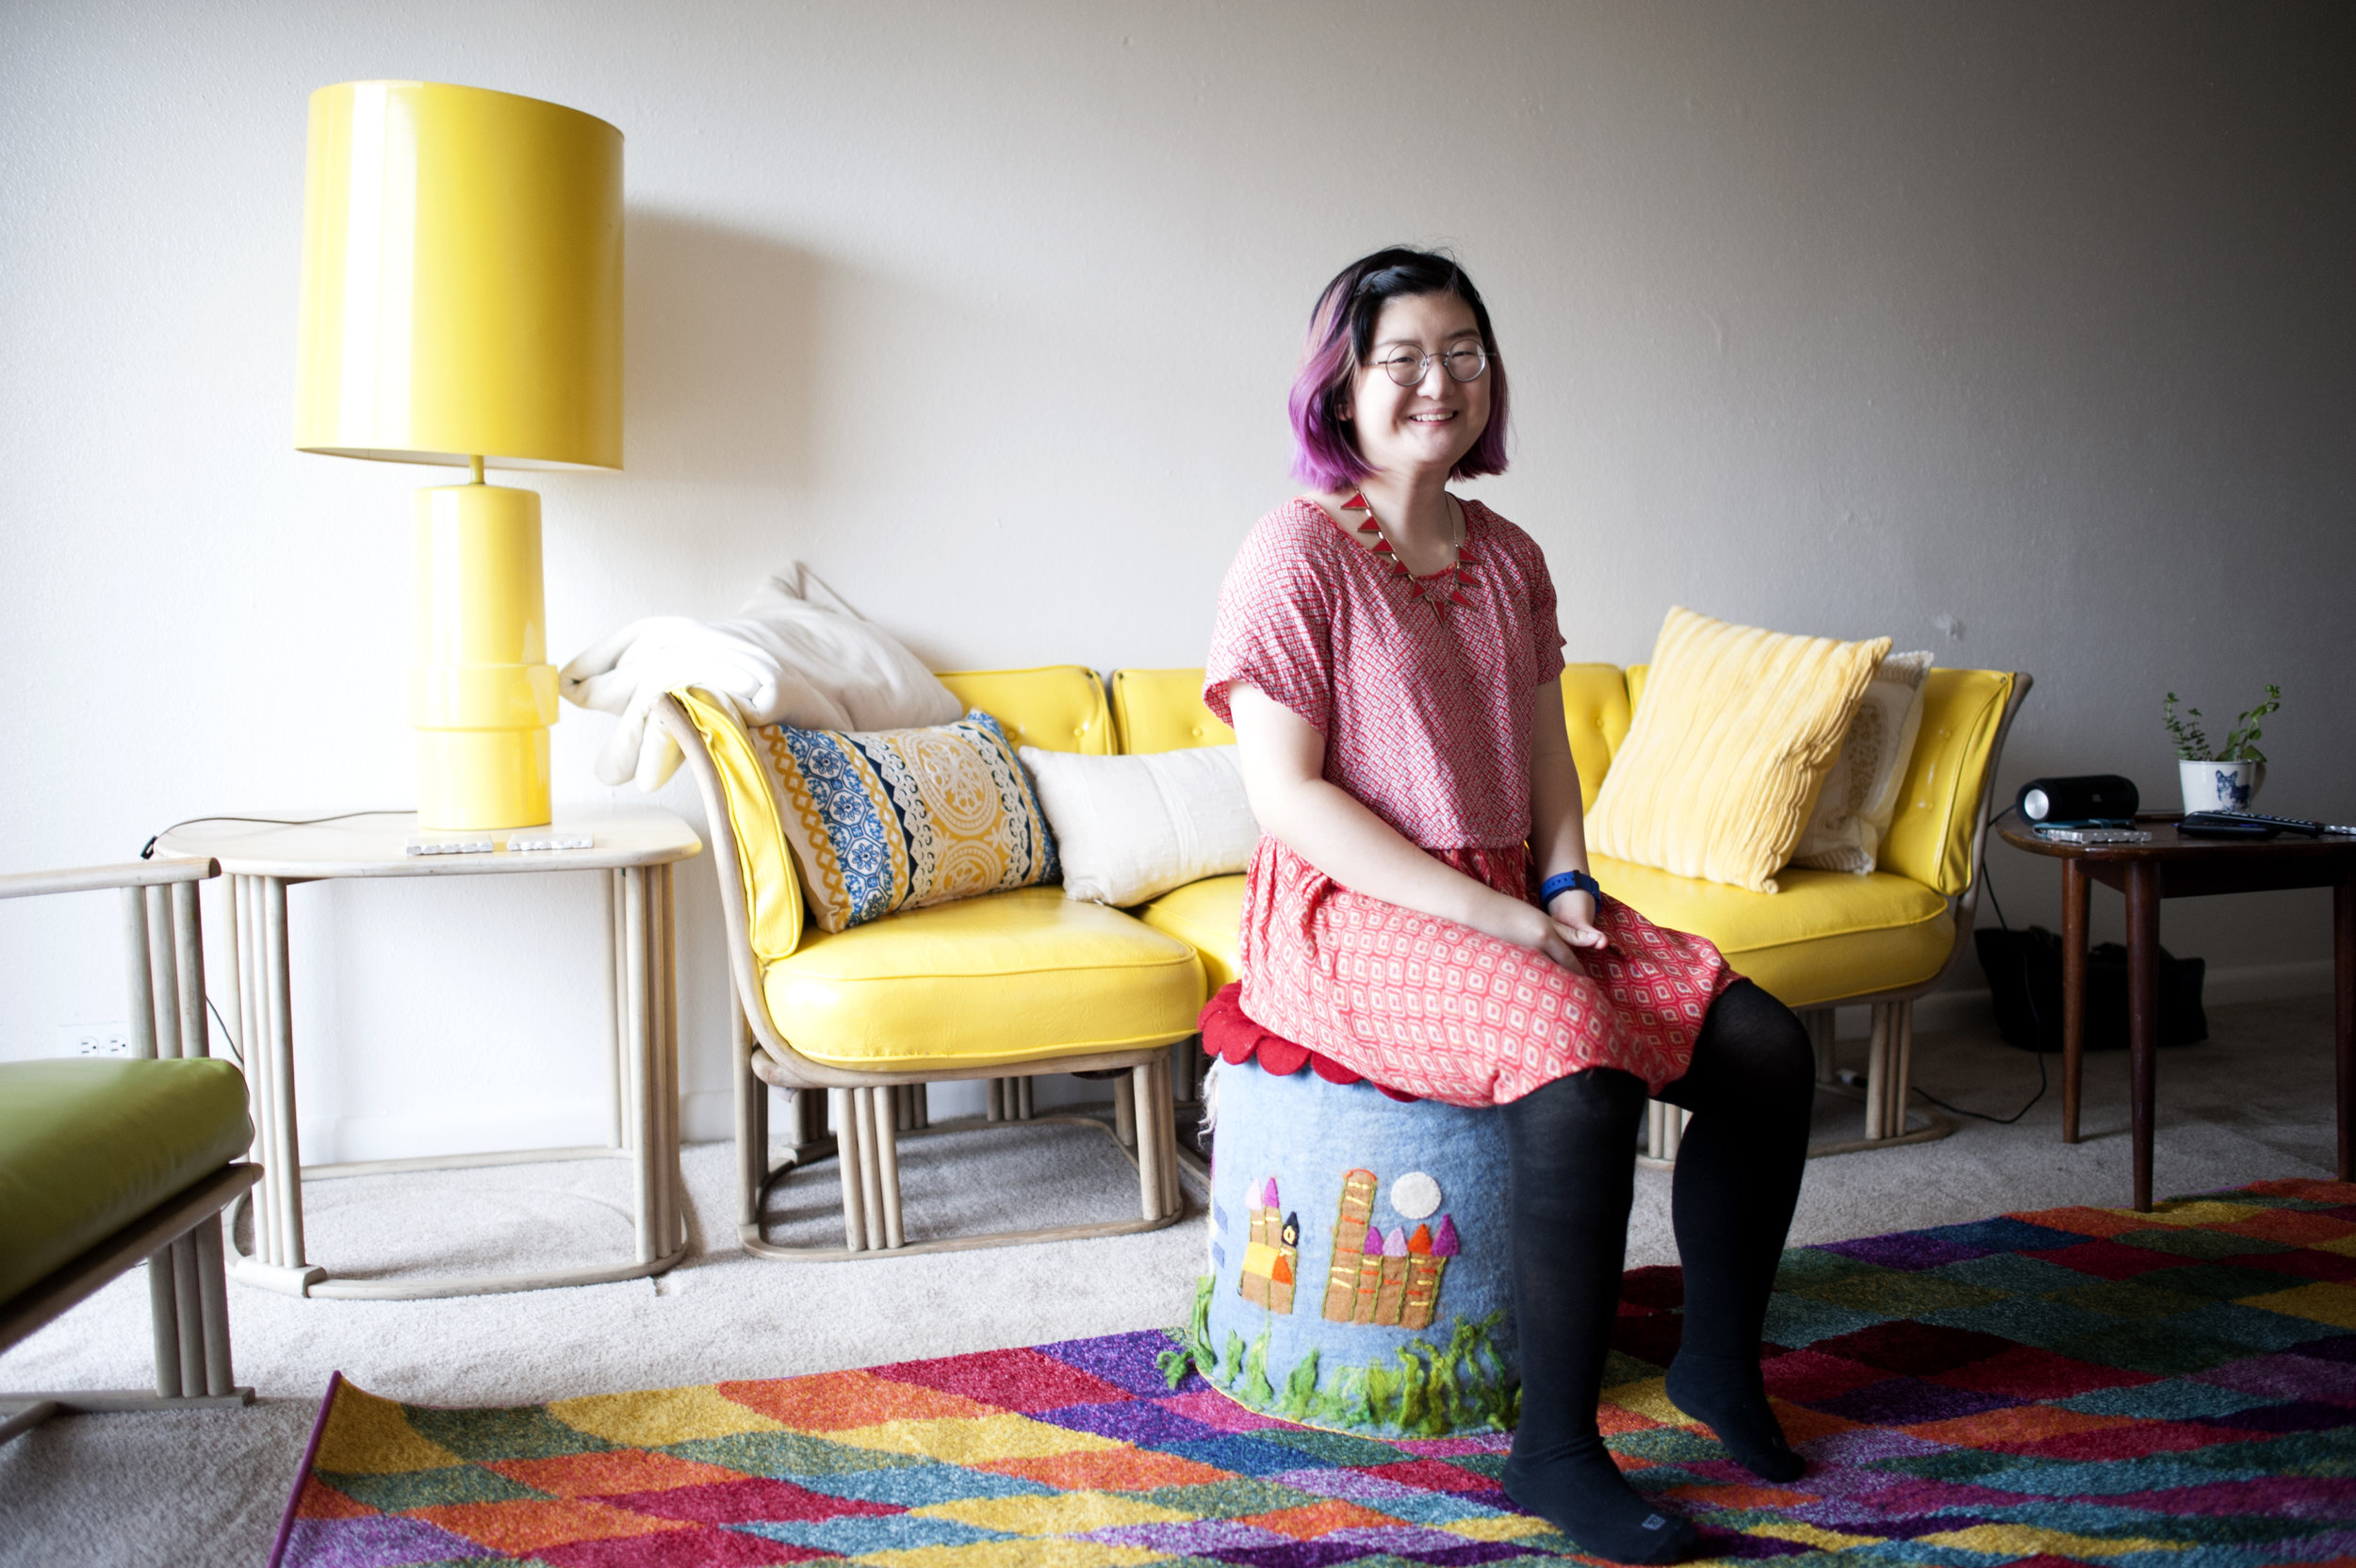 LILY - Lily discusses discovering her identity, embracing her Asian culture, and meeting her biological parents.